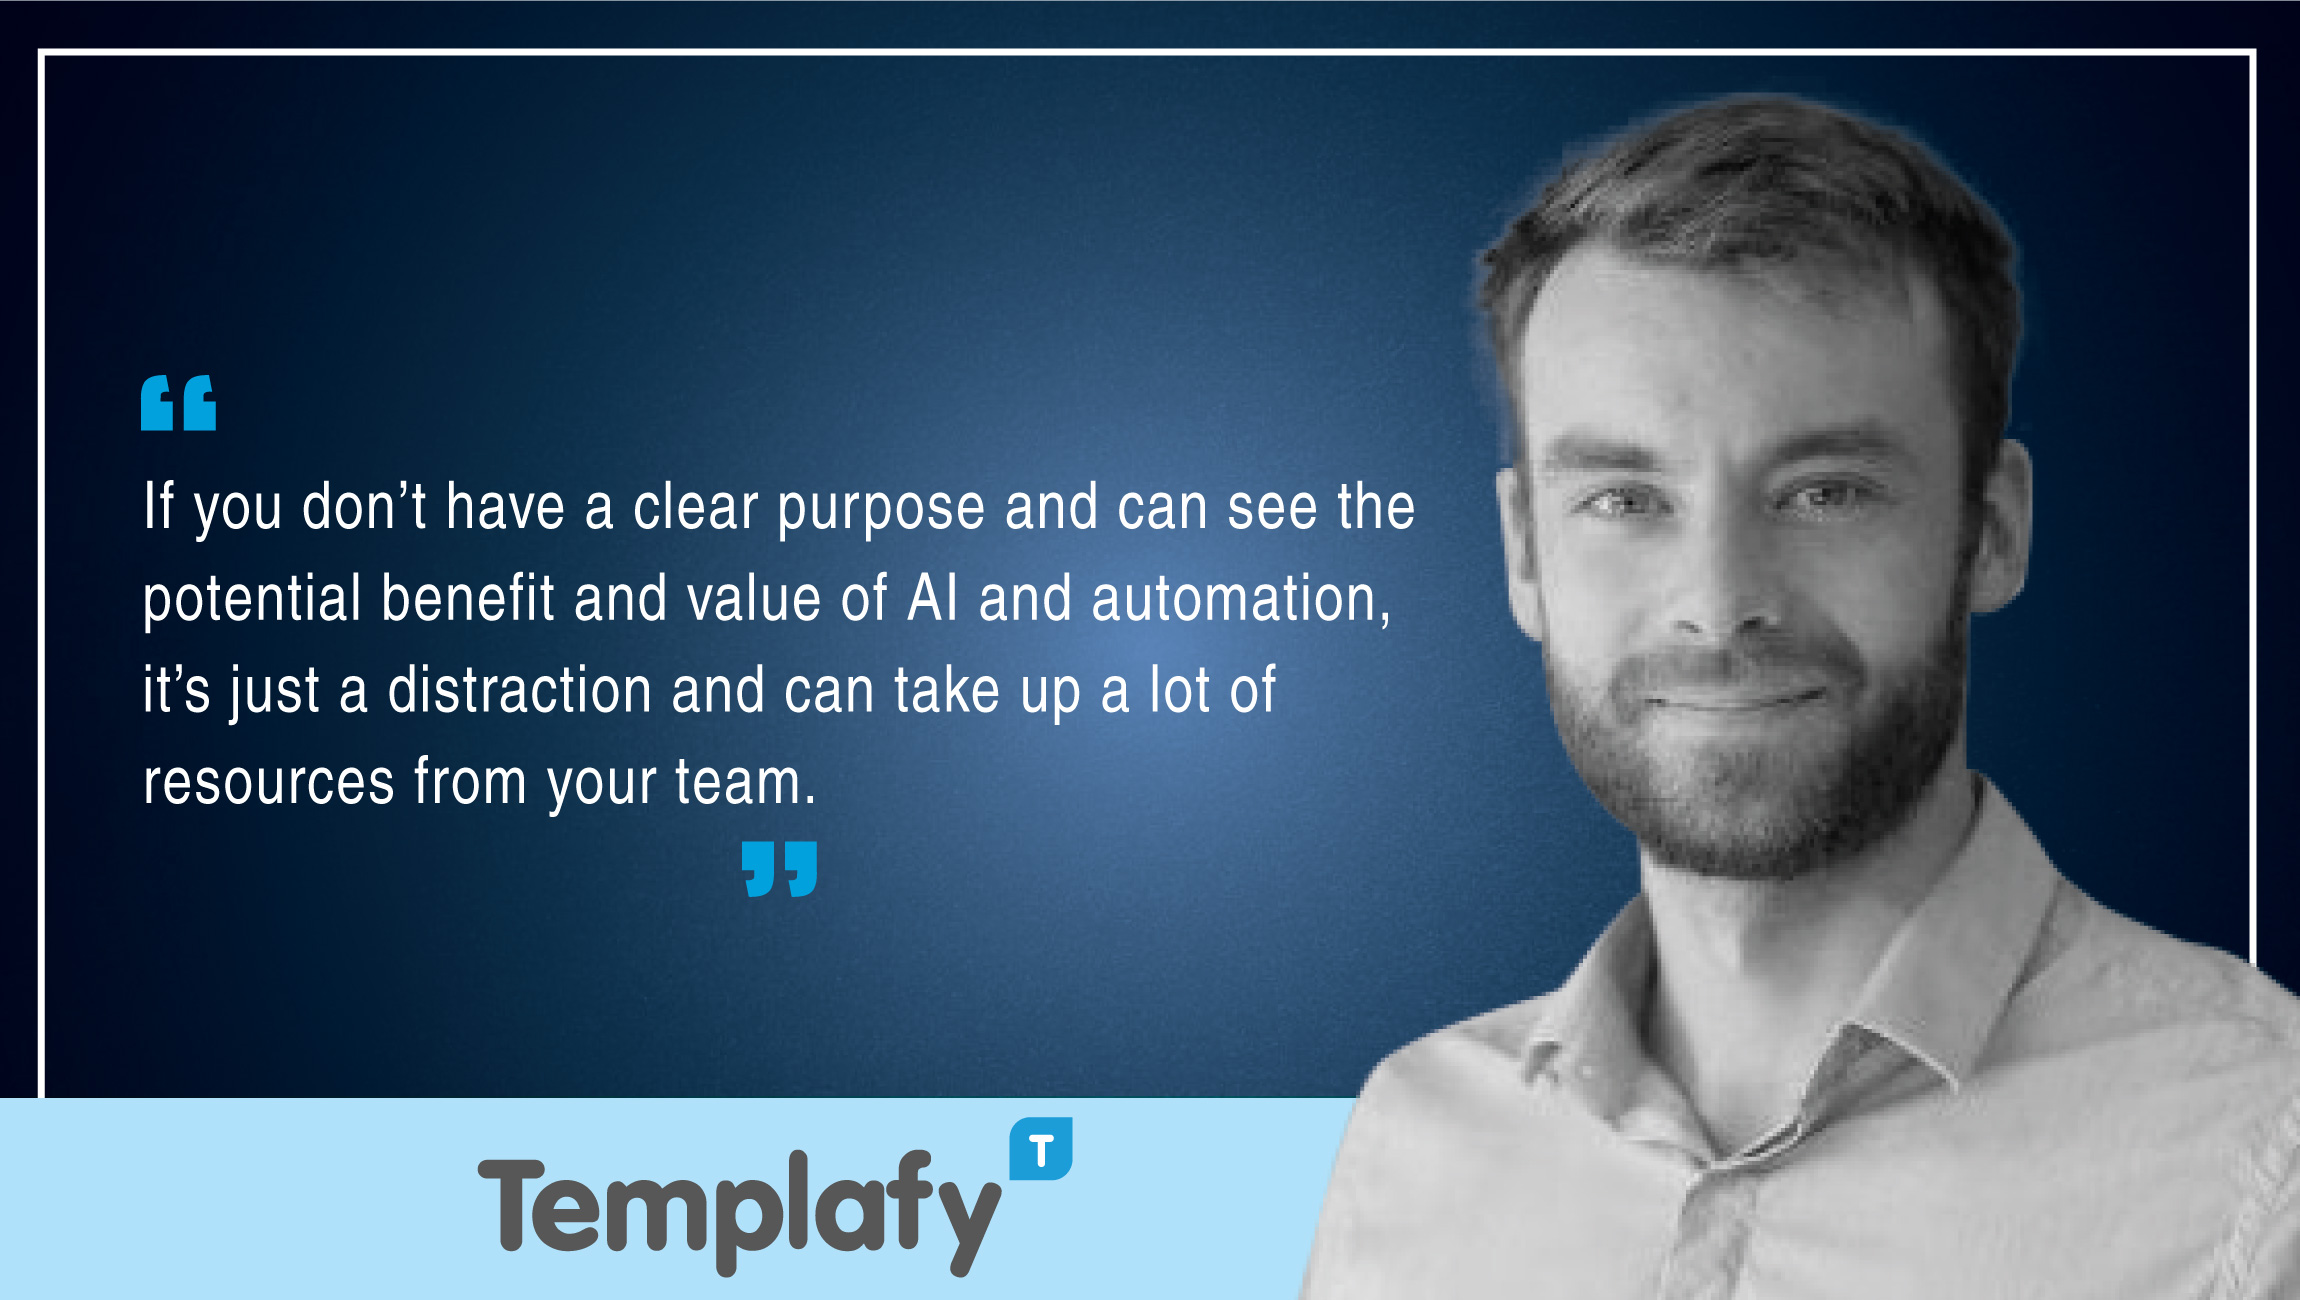 Glen Hagensen, Head of Marketing, Templafy